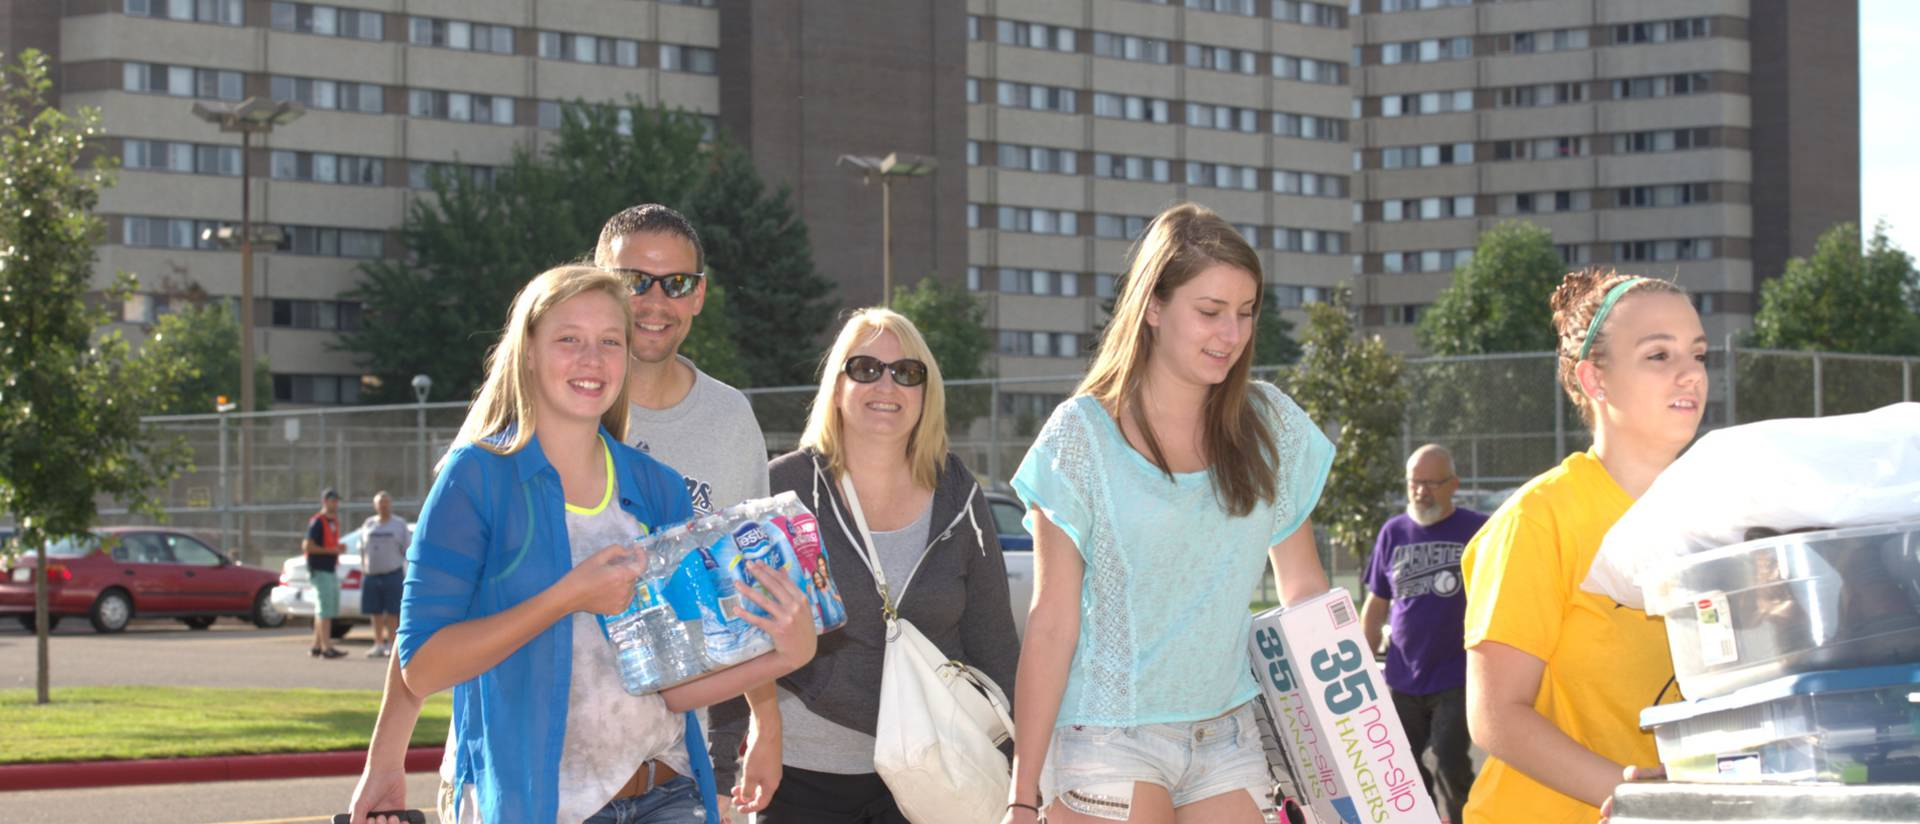 A family poses after a successful move-in to the dorms.